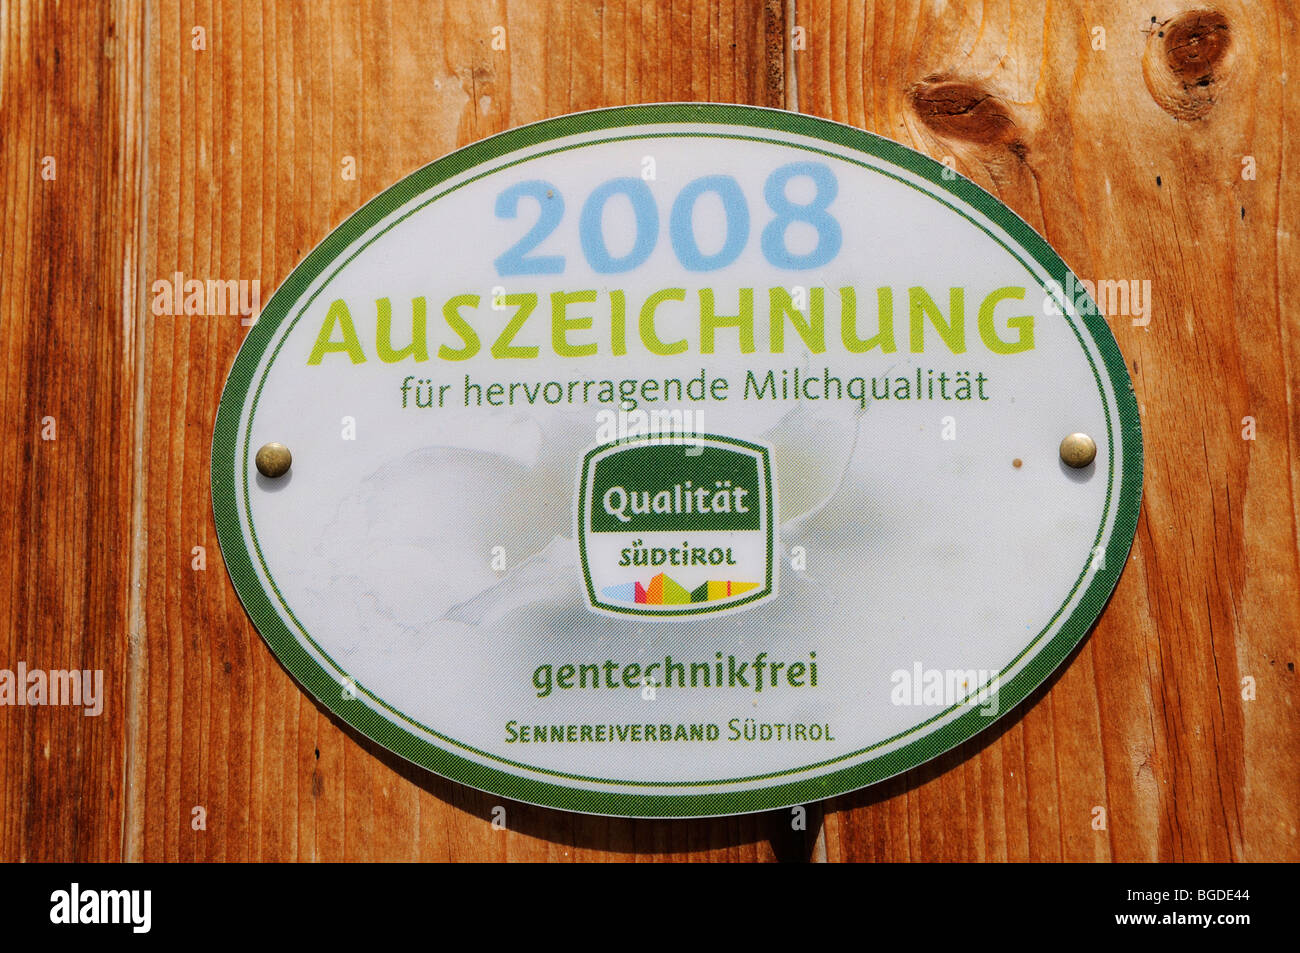 Free of gene technology, quality award by the dairy industry, South Tyrol, Italy, Europe - Stock Image